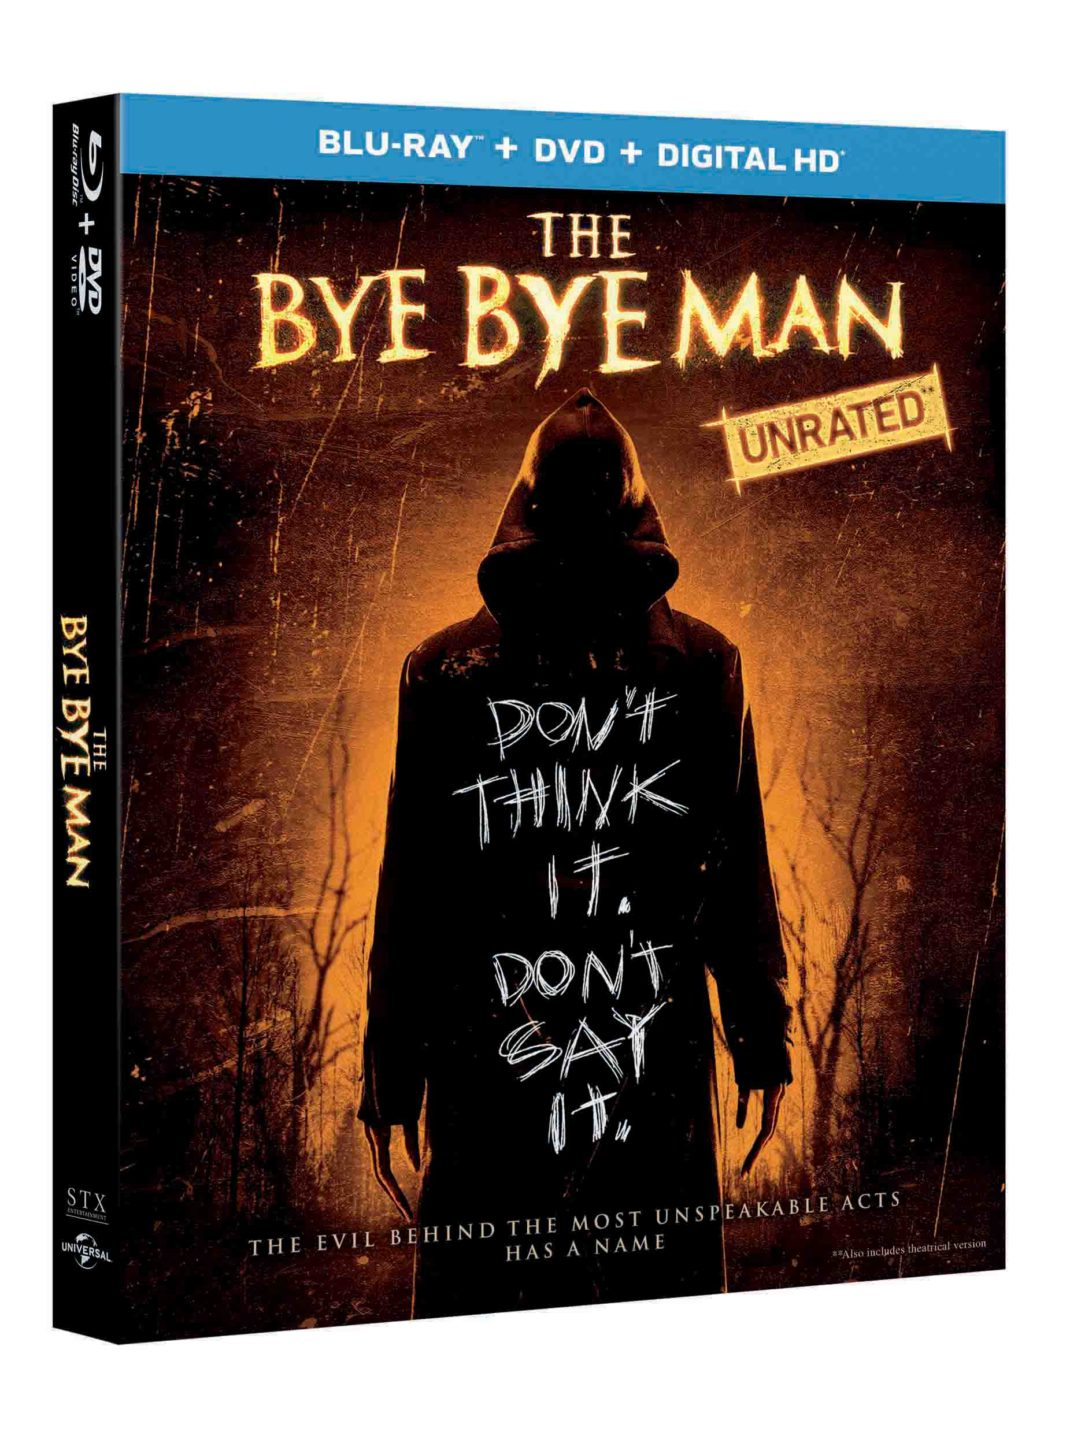 we chat with the bye bye man director stacy title and writer